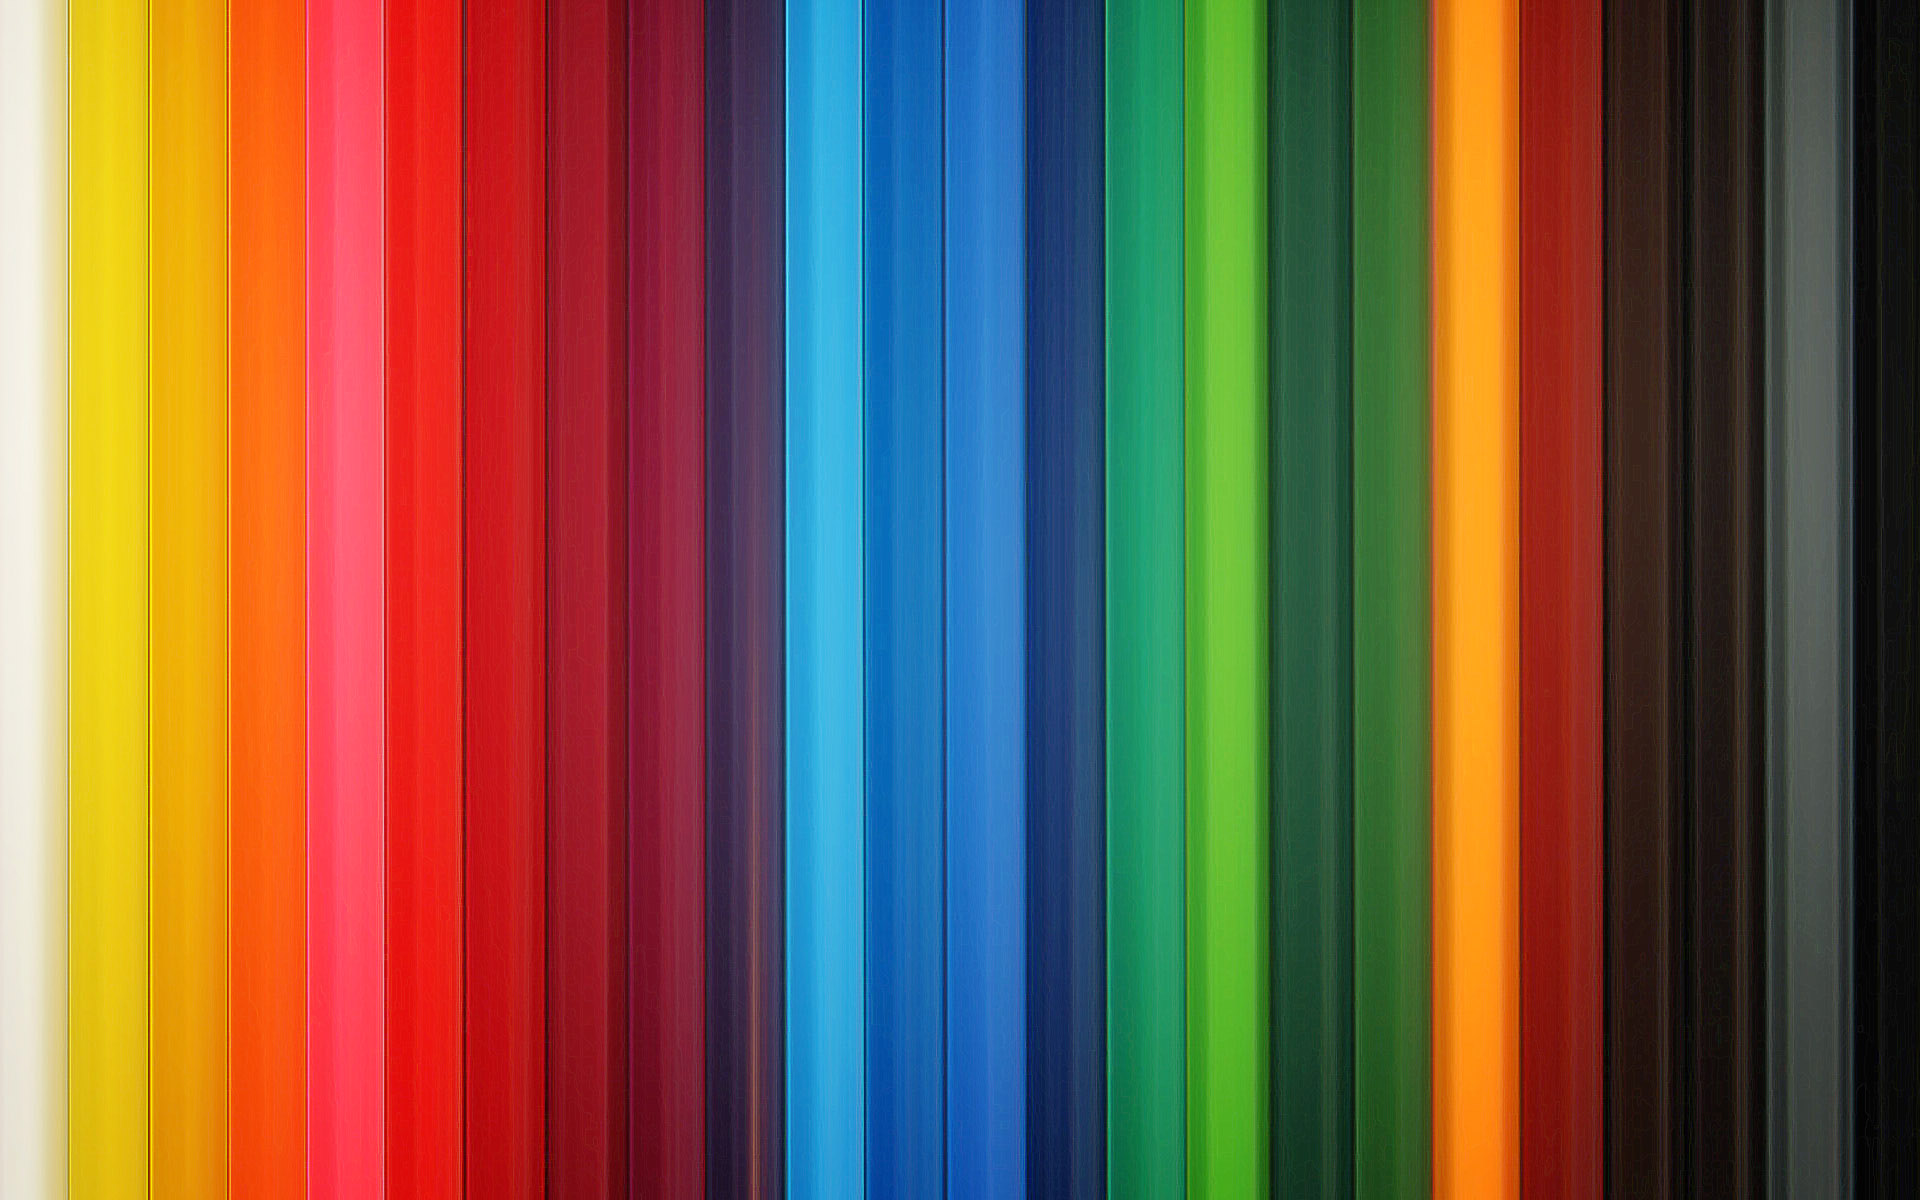 HD Wallpapers Colorful